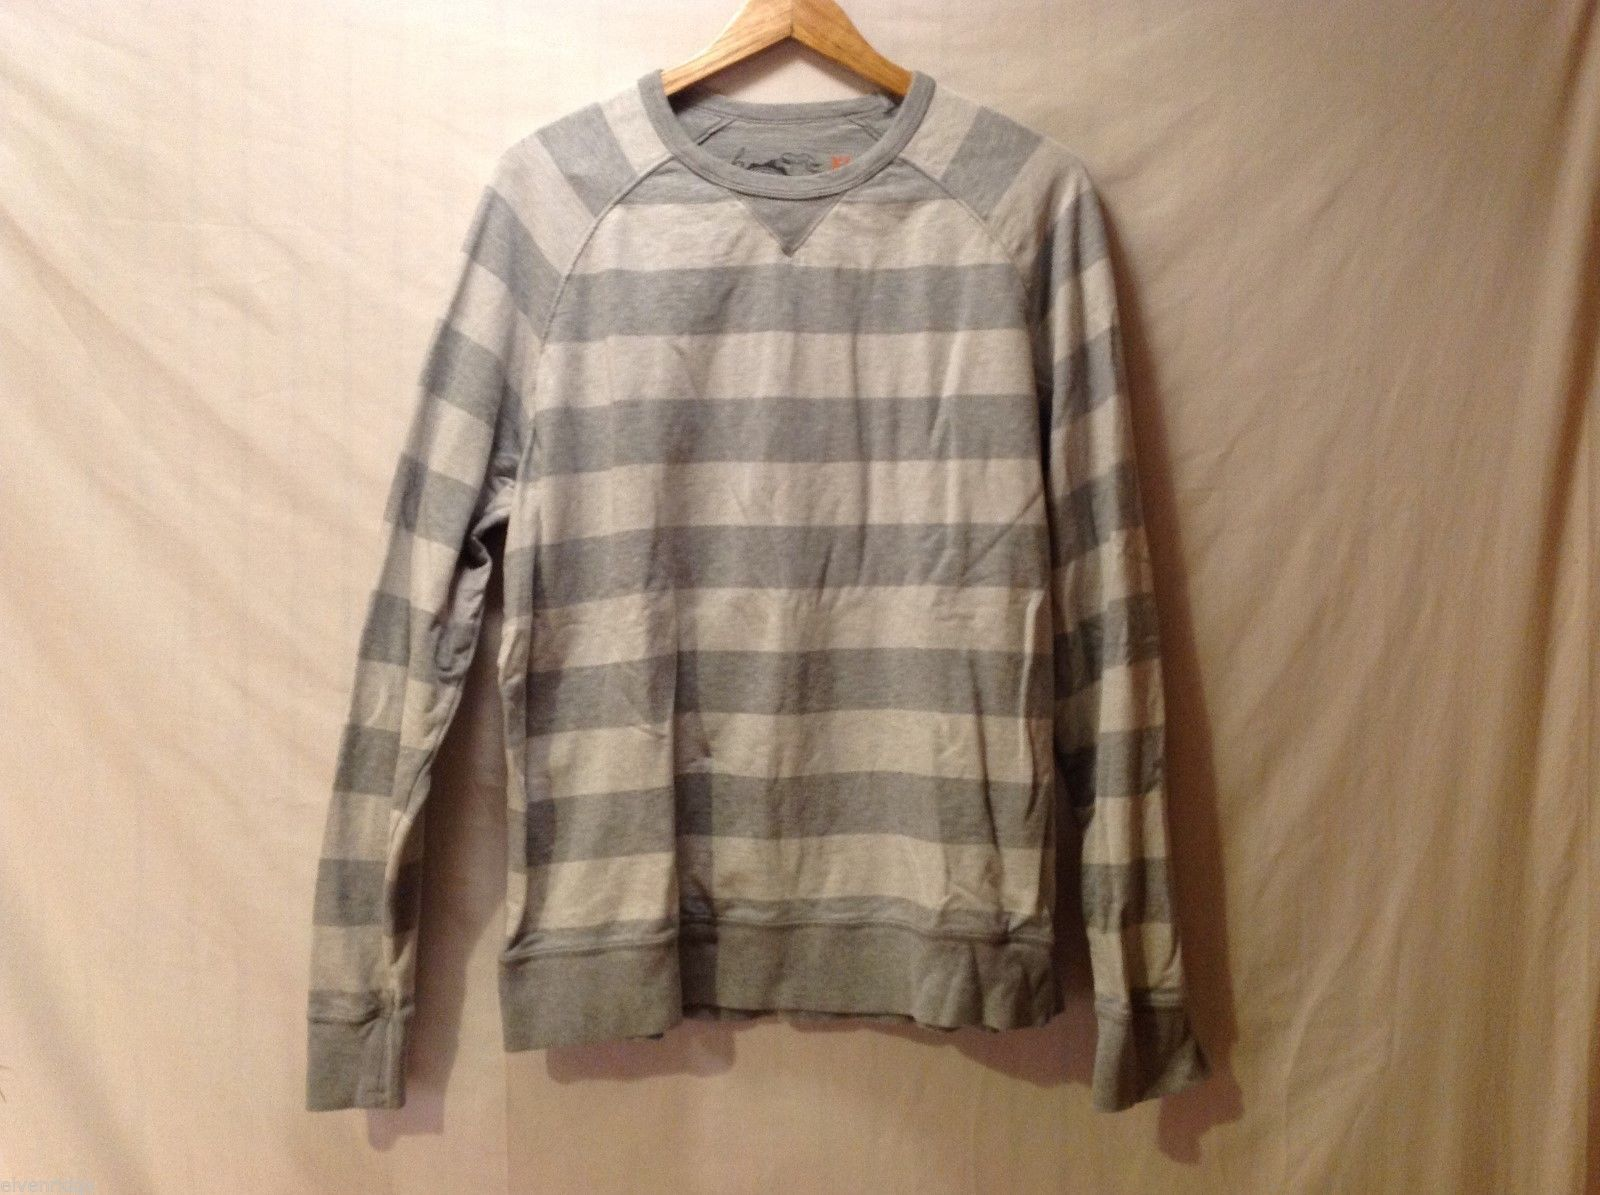 Unisex Long Sleeve Dark and Light Gray Striped Shirt, Size XL